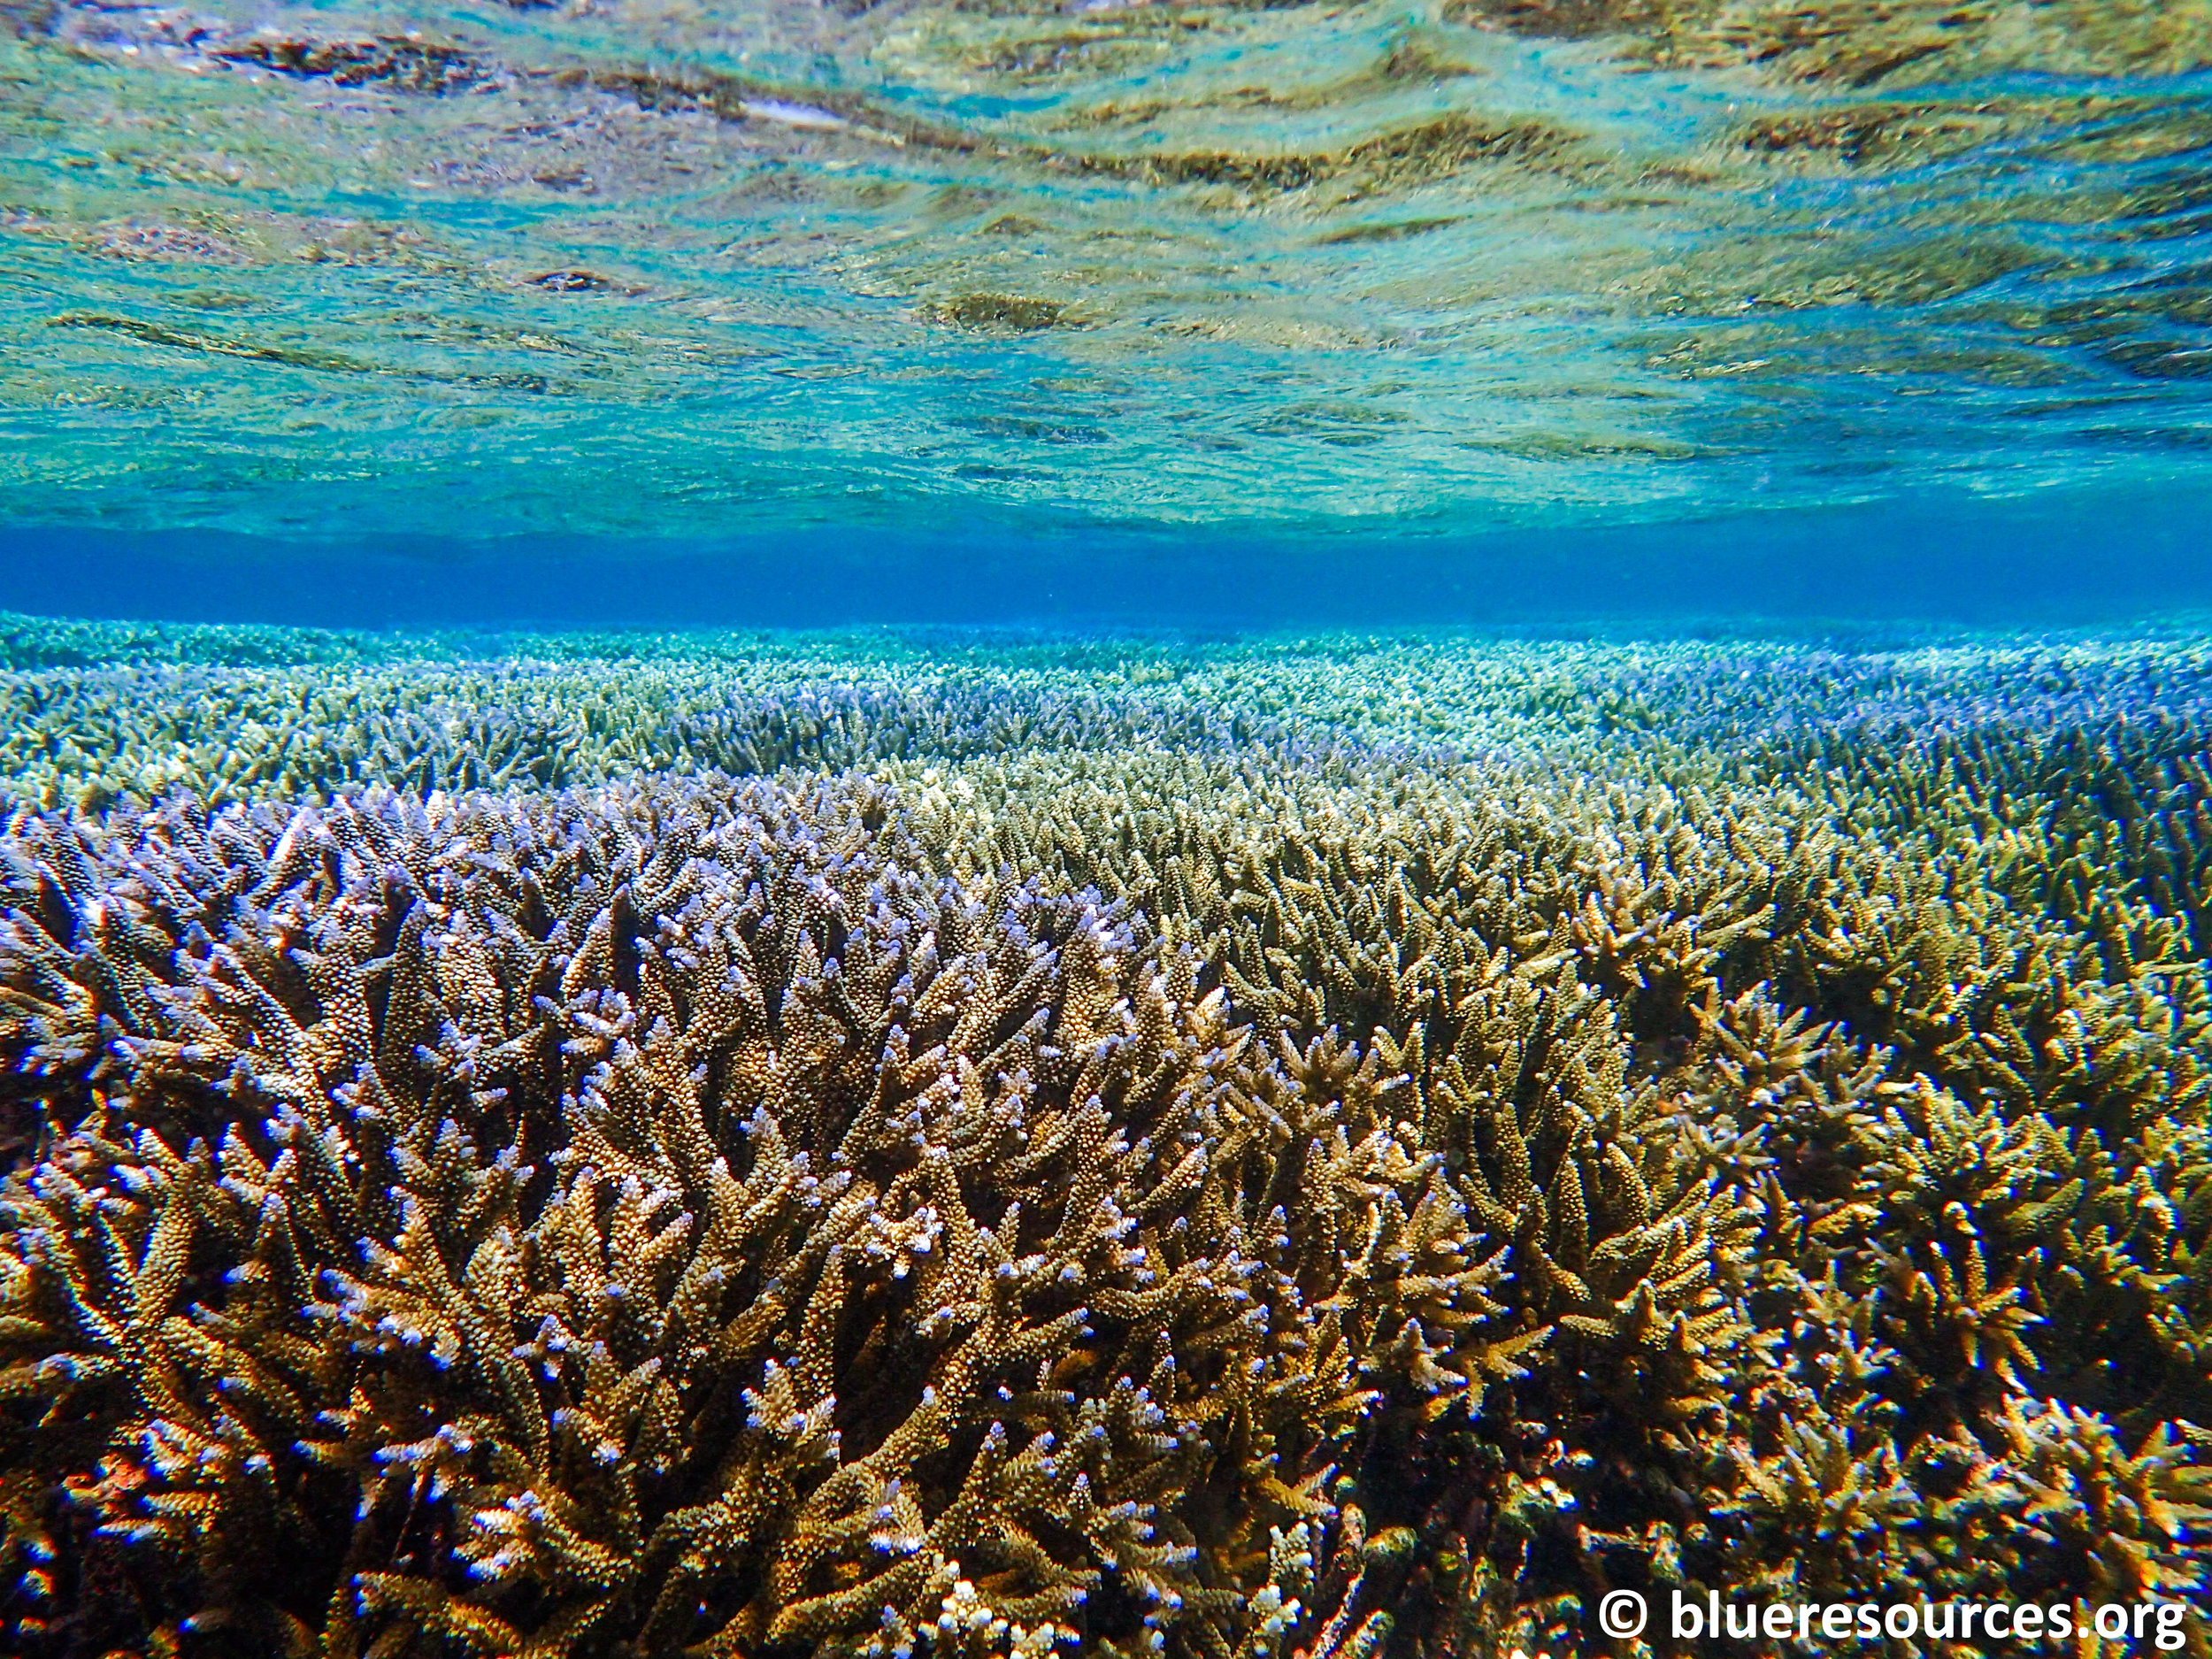 The corals of Pigeon Island Marine Protected Area